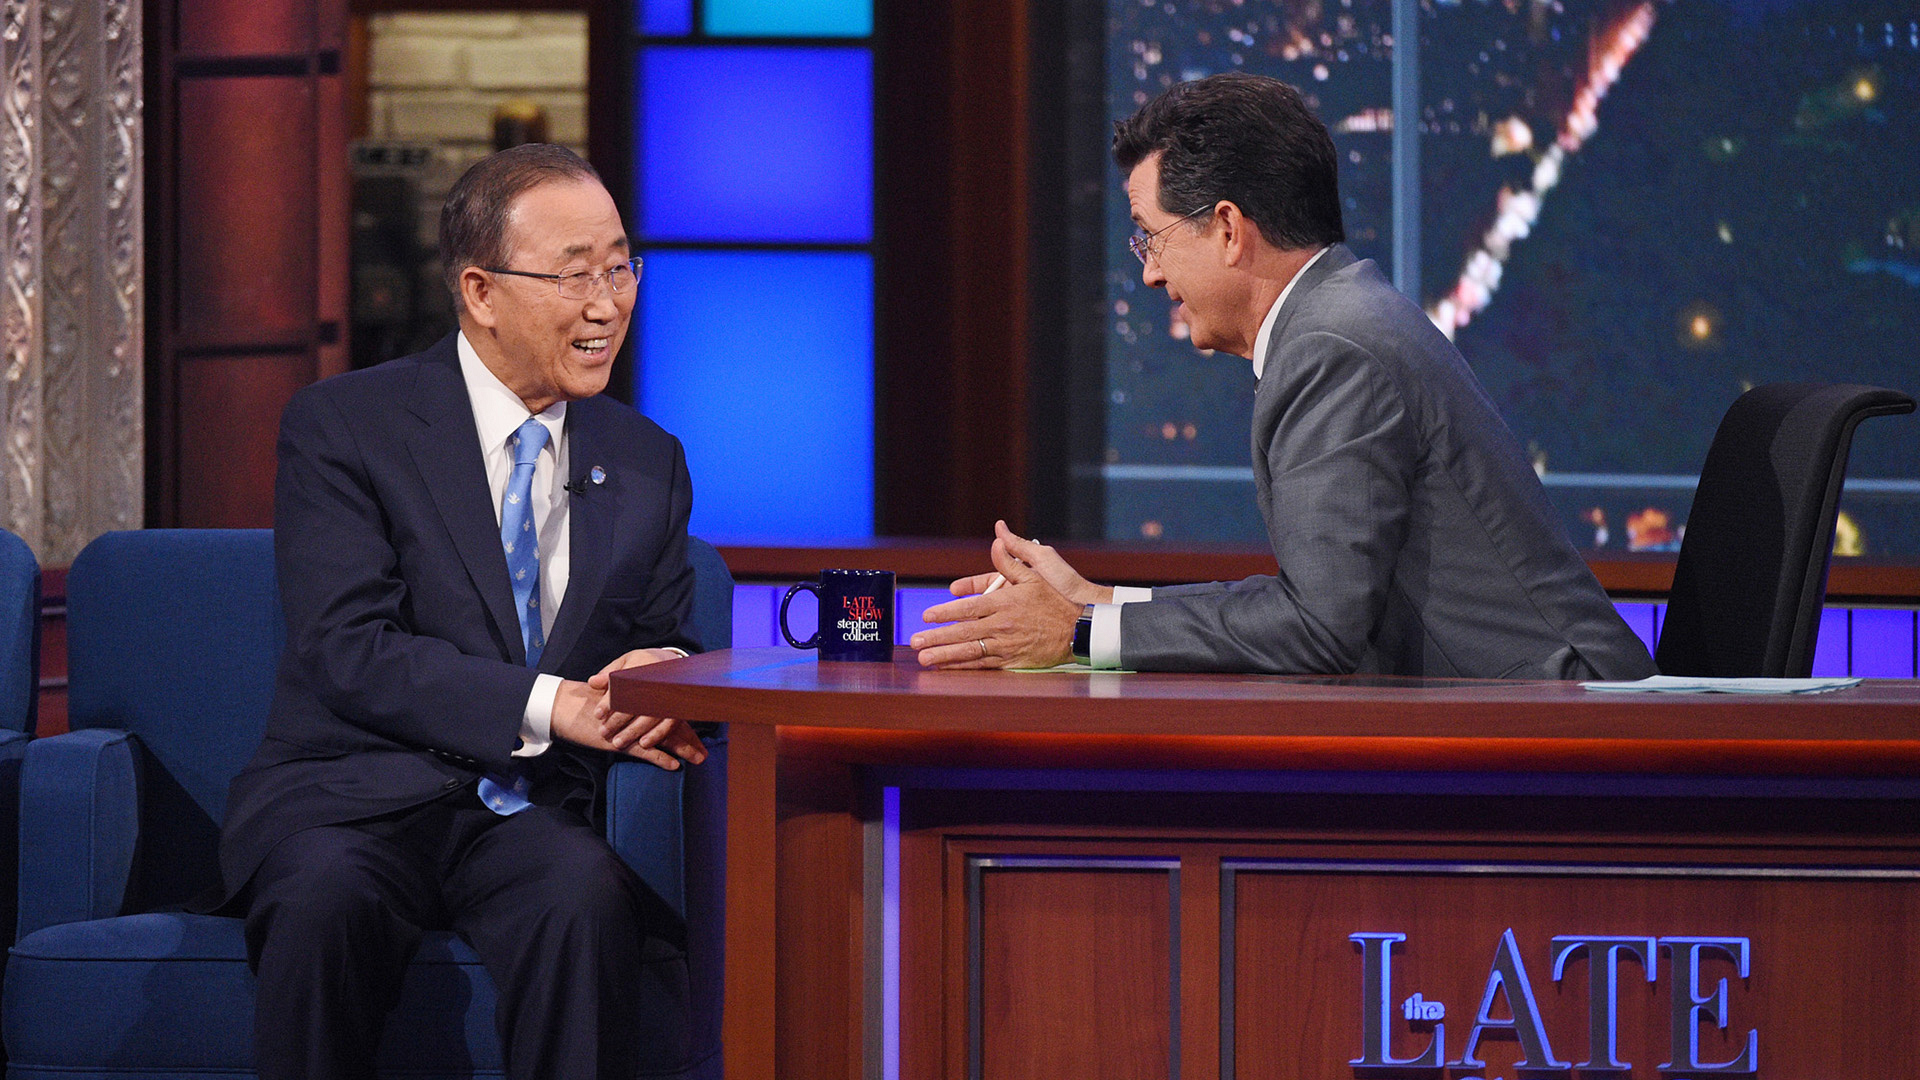 Ban Ki-moon and Stephen Colbert